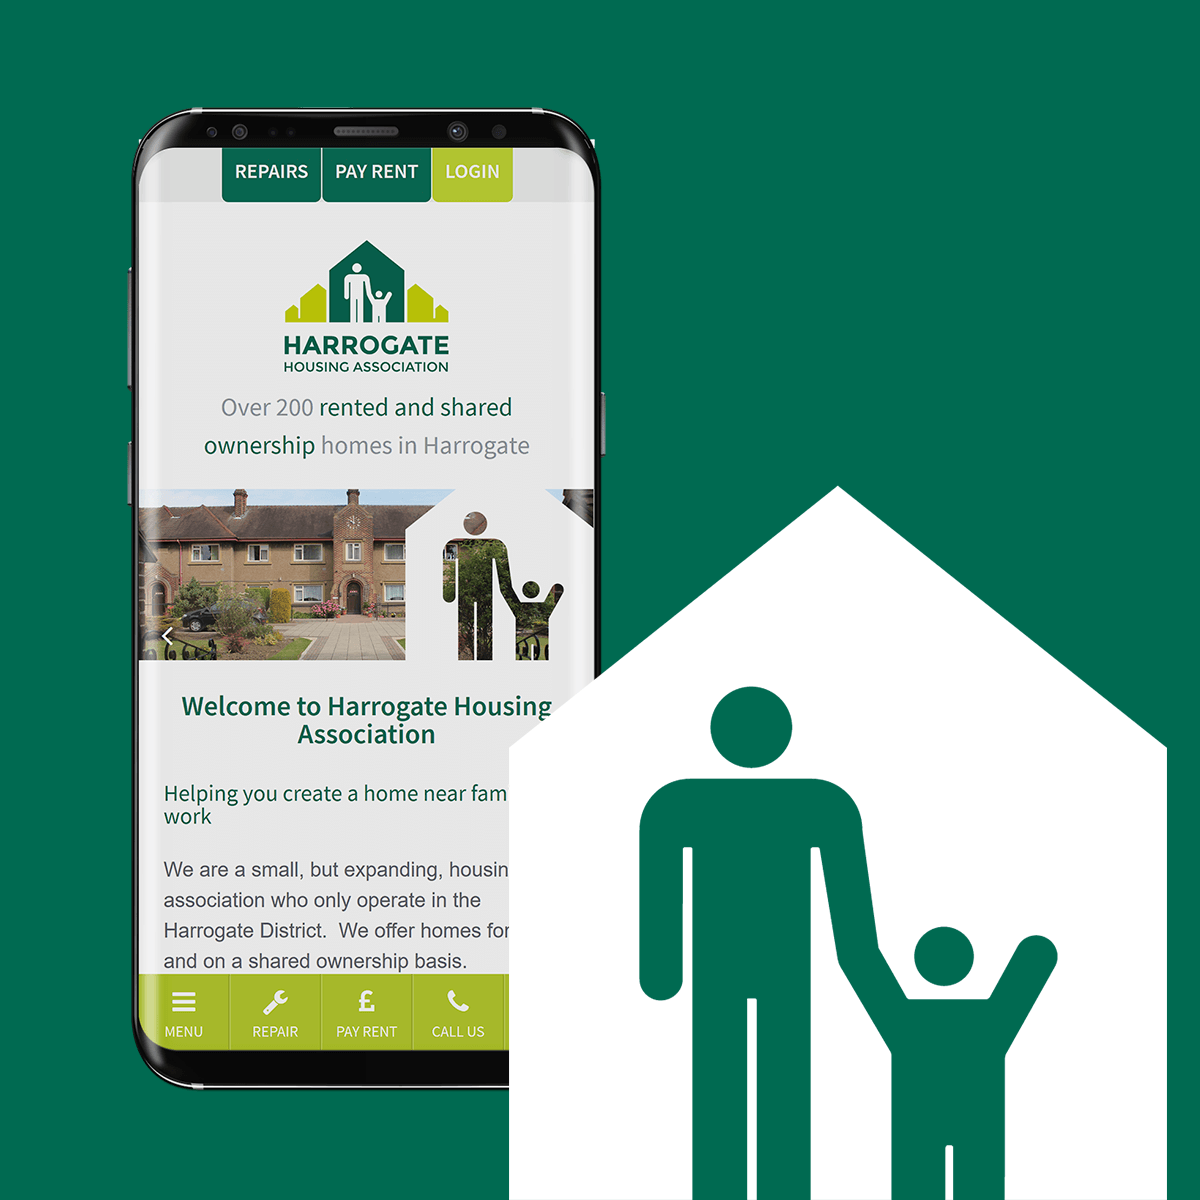 Harrogate Housing Association - Web Design